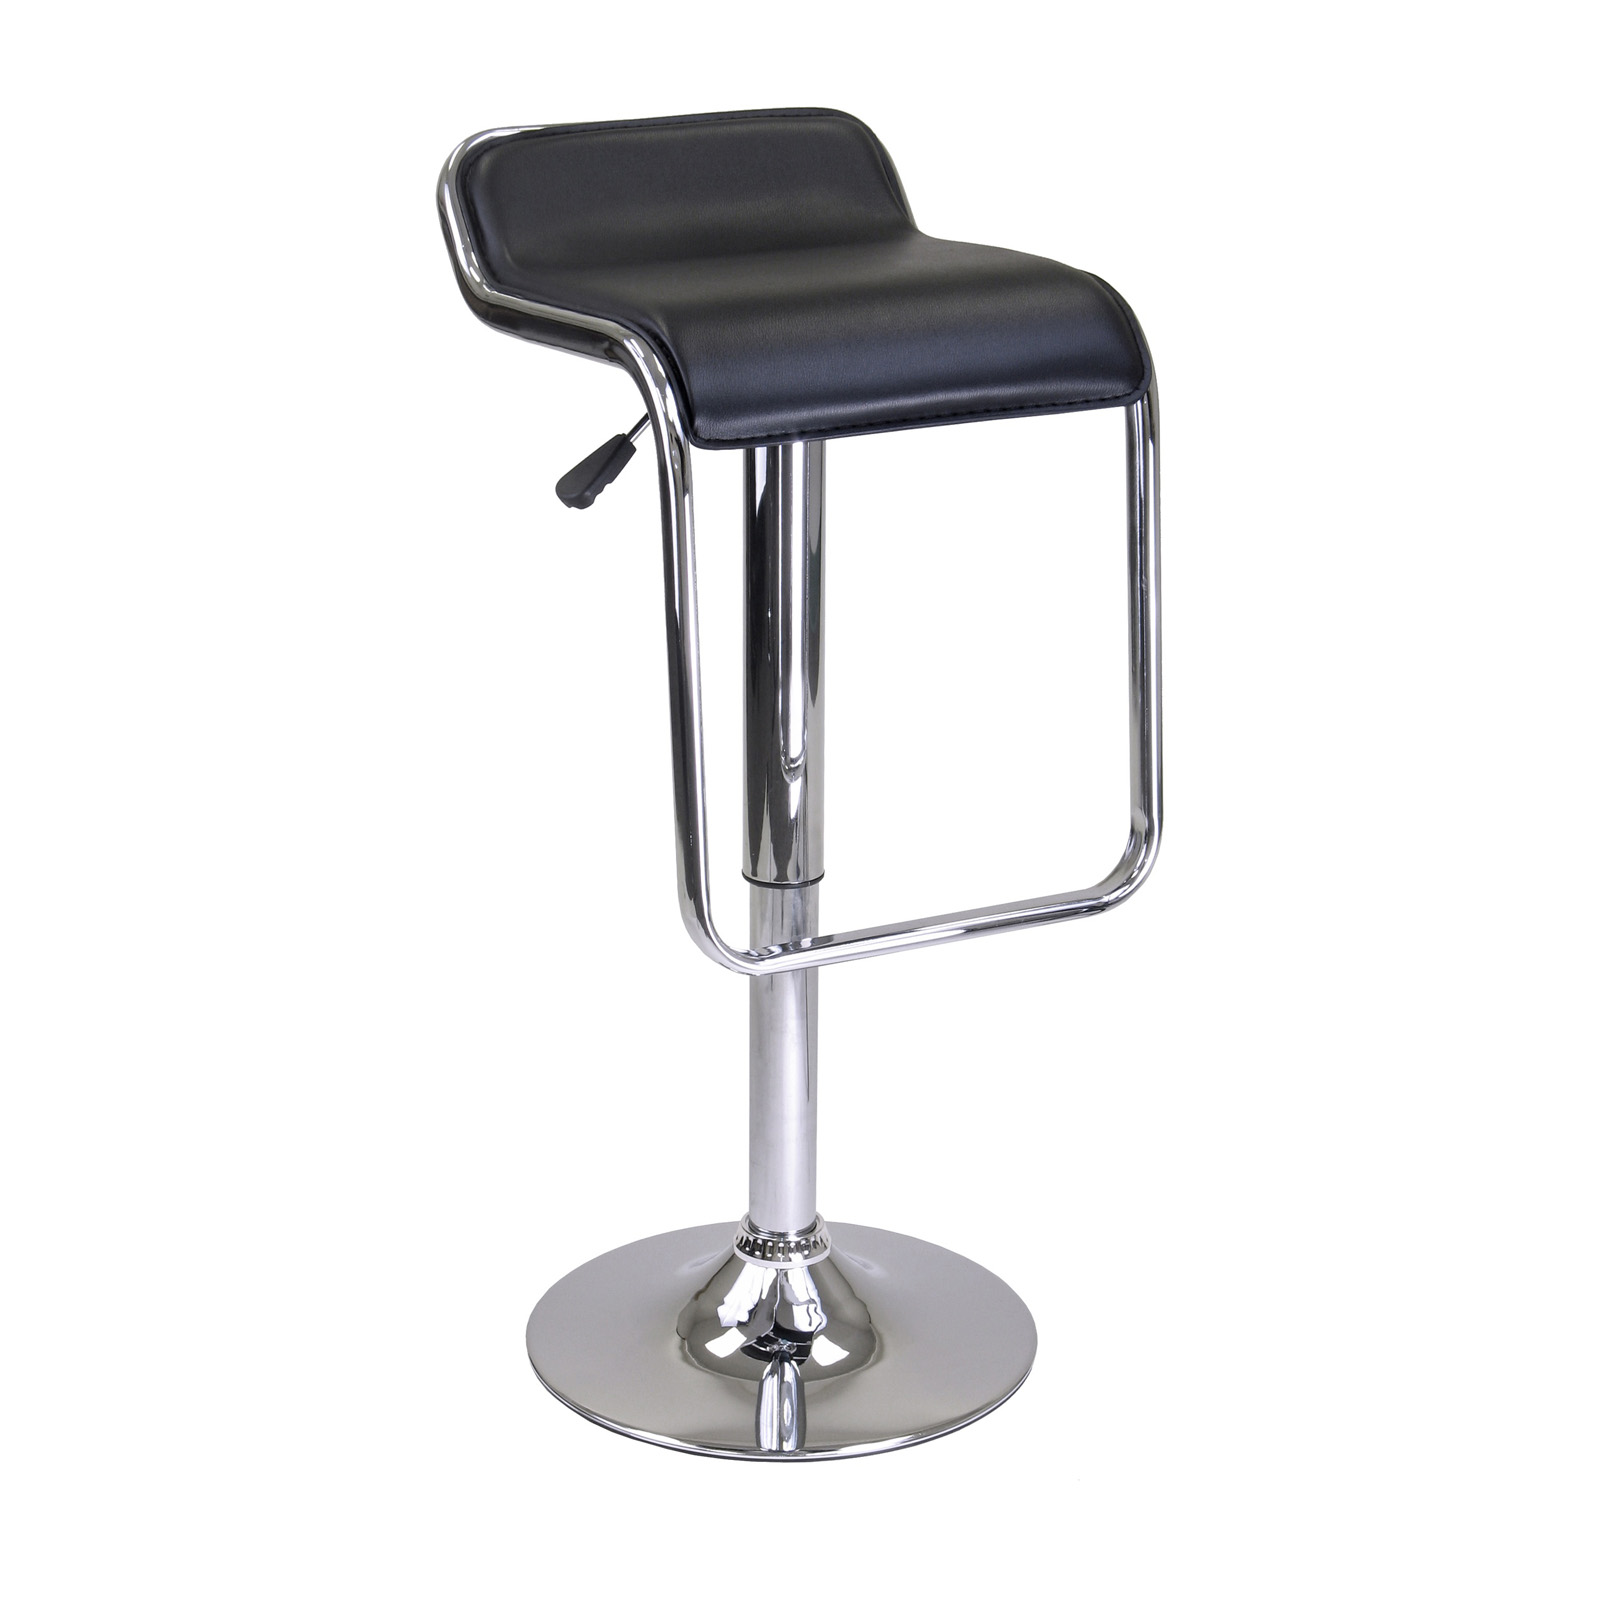 Winsome Oslo Air Lift Adjustable Backless Chrome Bar Stool